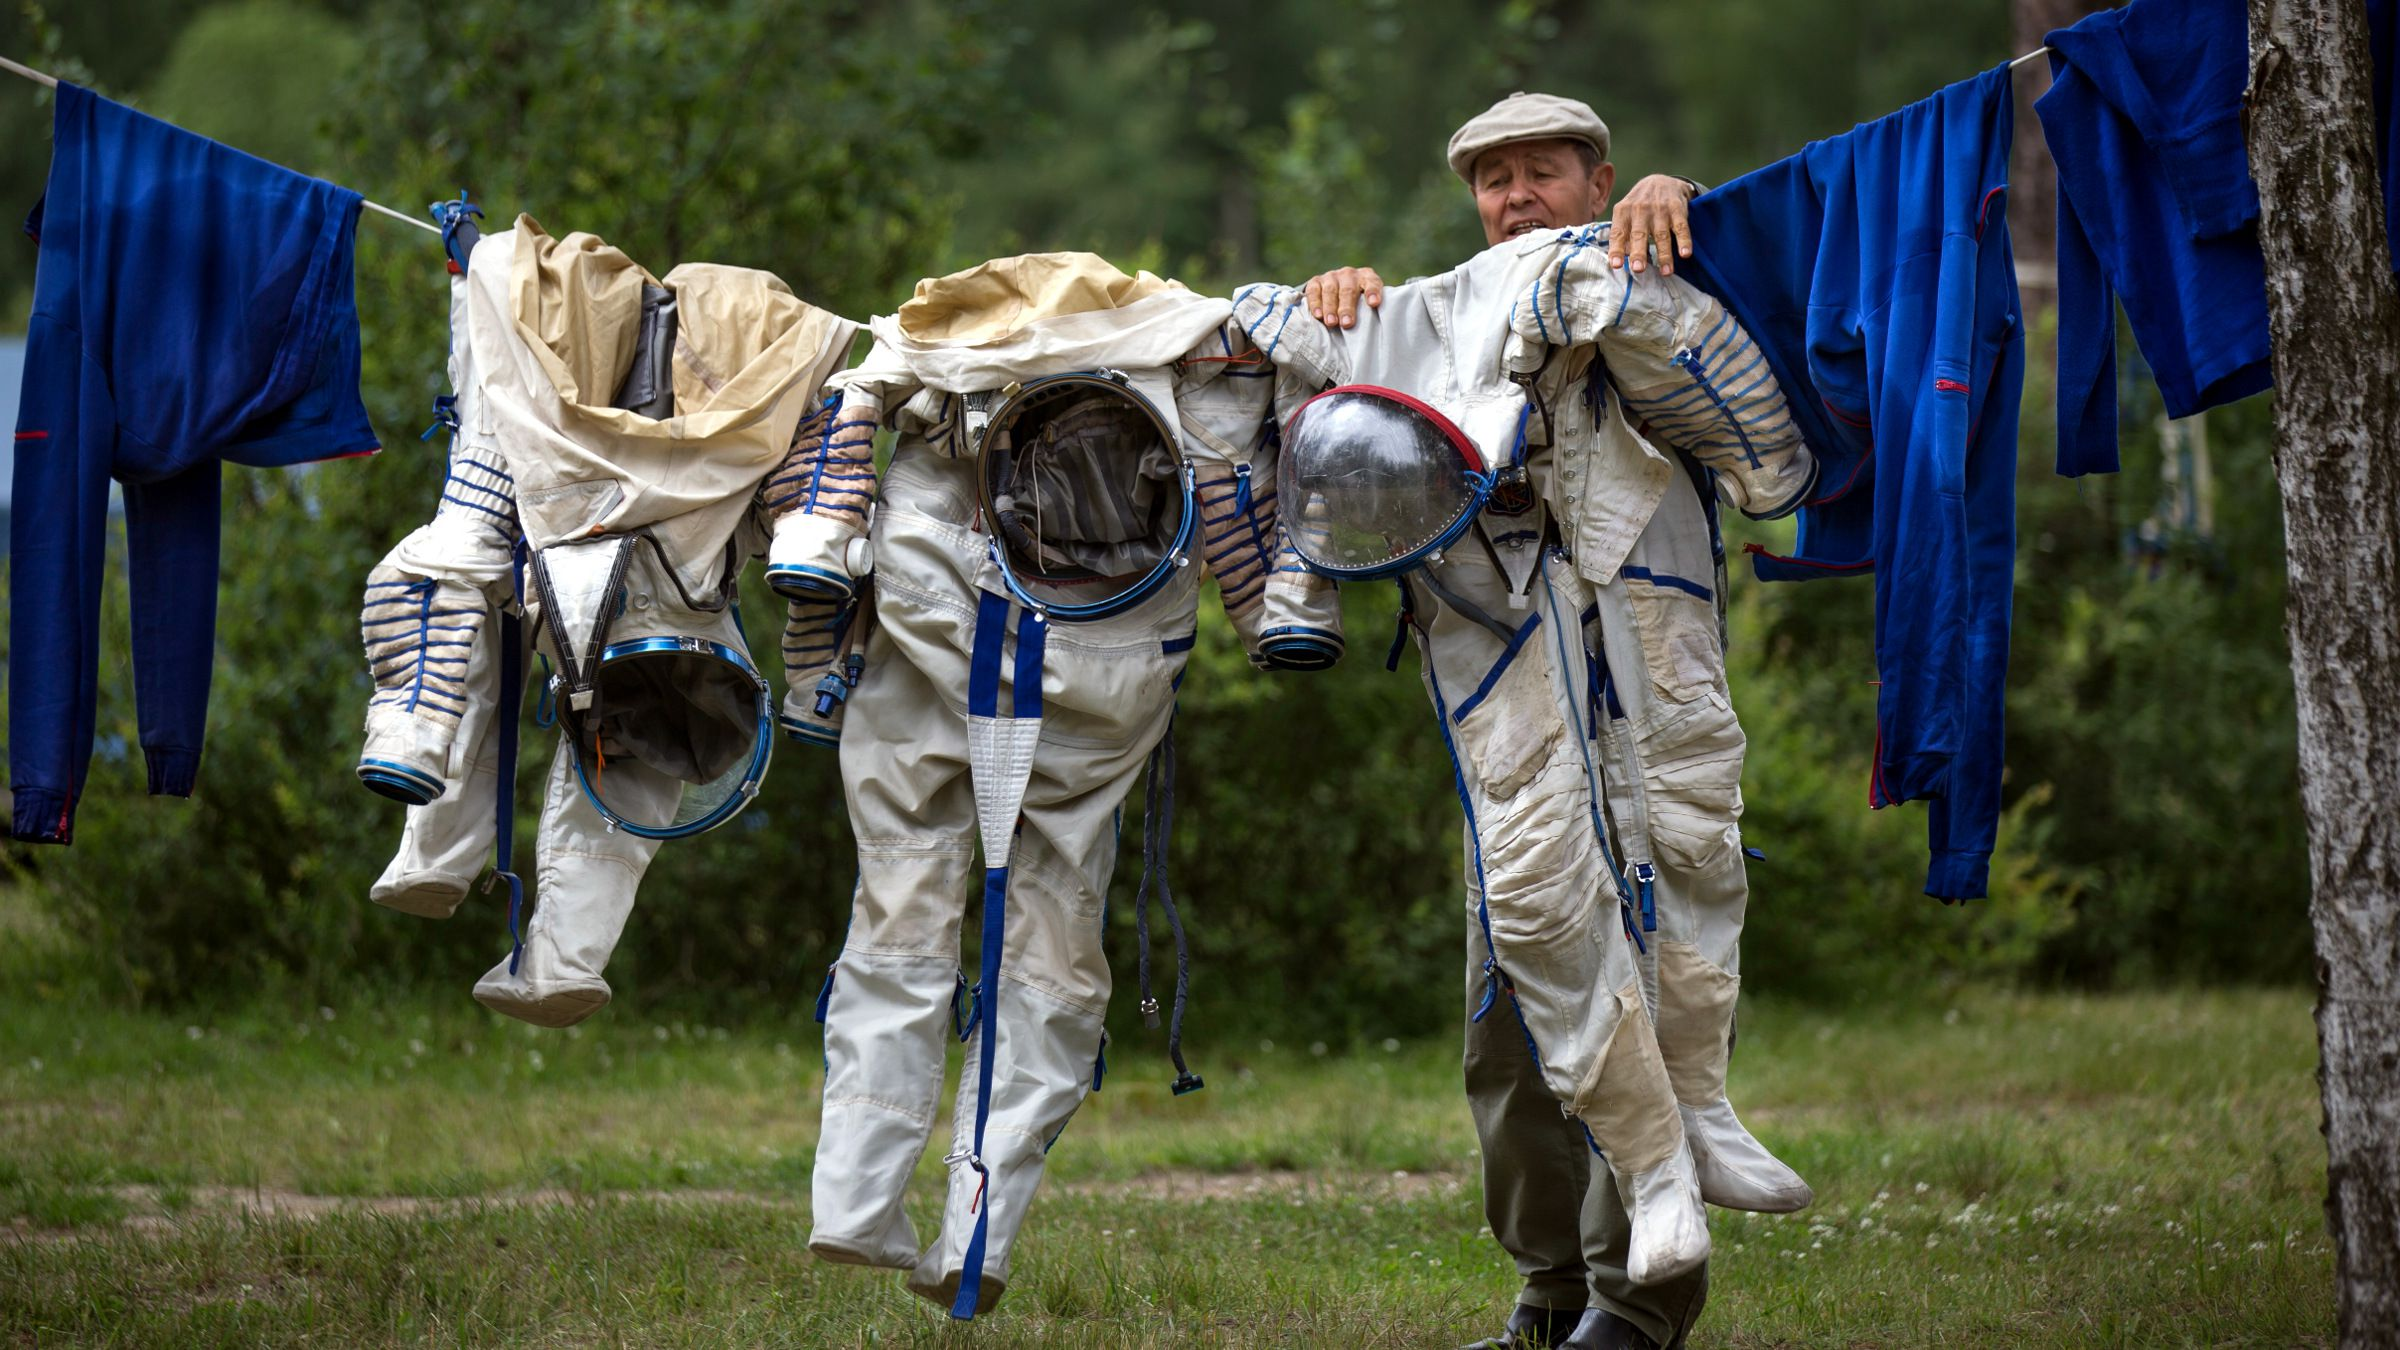 FOR USE AS DESIRED, YEAR END PHOTOS - FILE - An employee of the Russian Space Training Center hangs out space suits to dry of Russian cosmonaut Anatoly Ivanishin, NASA's U.S. flight engineer Kathleen Rubins and Japanese space agency's flight engineer Takuya Onishi after their undergoing training near in Noginsk, 60 km (38 miles) east of Moscow, Russia, Wednesday, July 2, 2014. The training was intended to simulate the capsule landing on water.